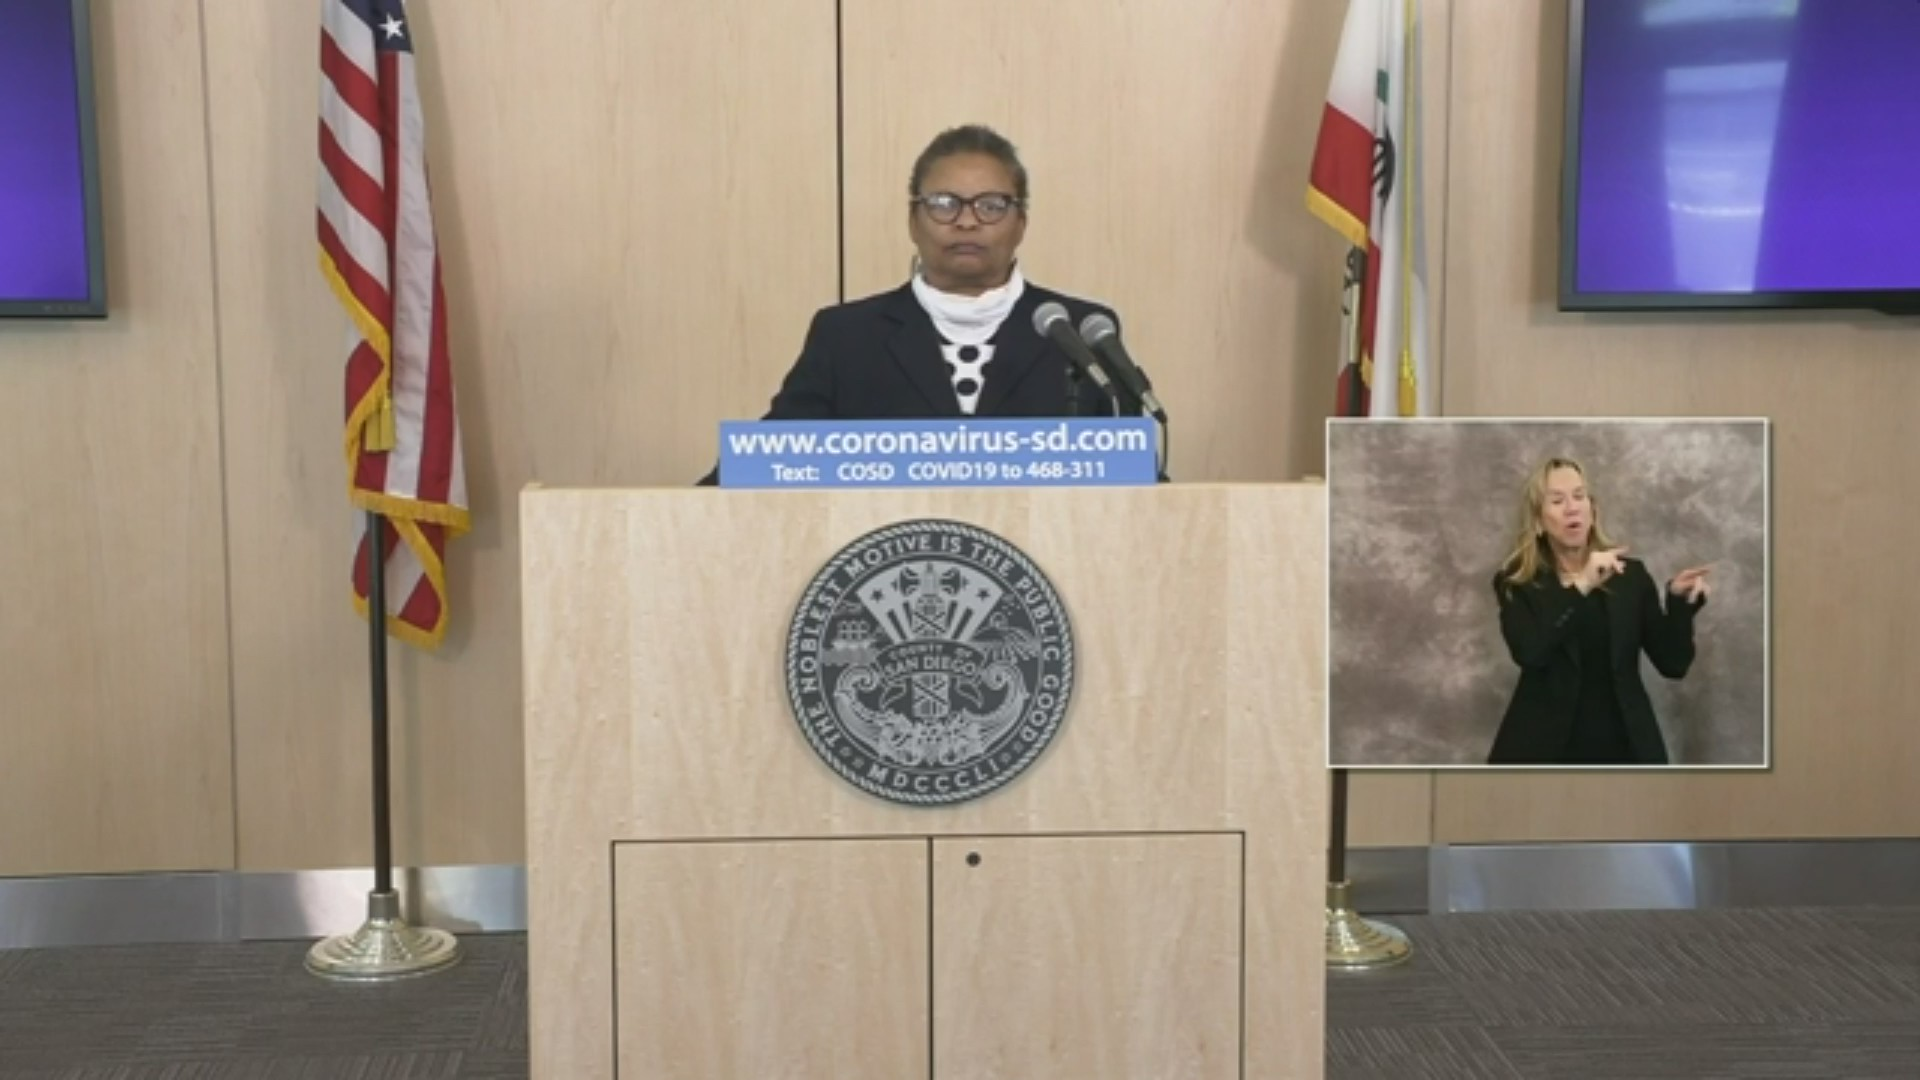 San Diego County Public Health Officer Dr. Wilma Wooten